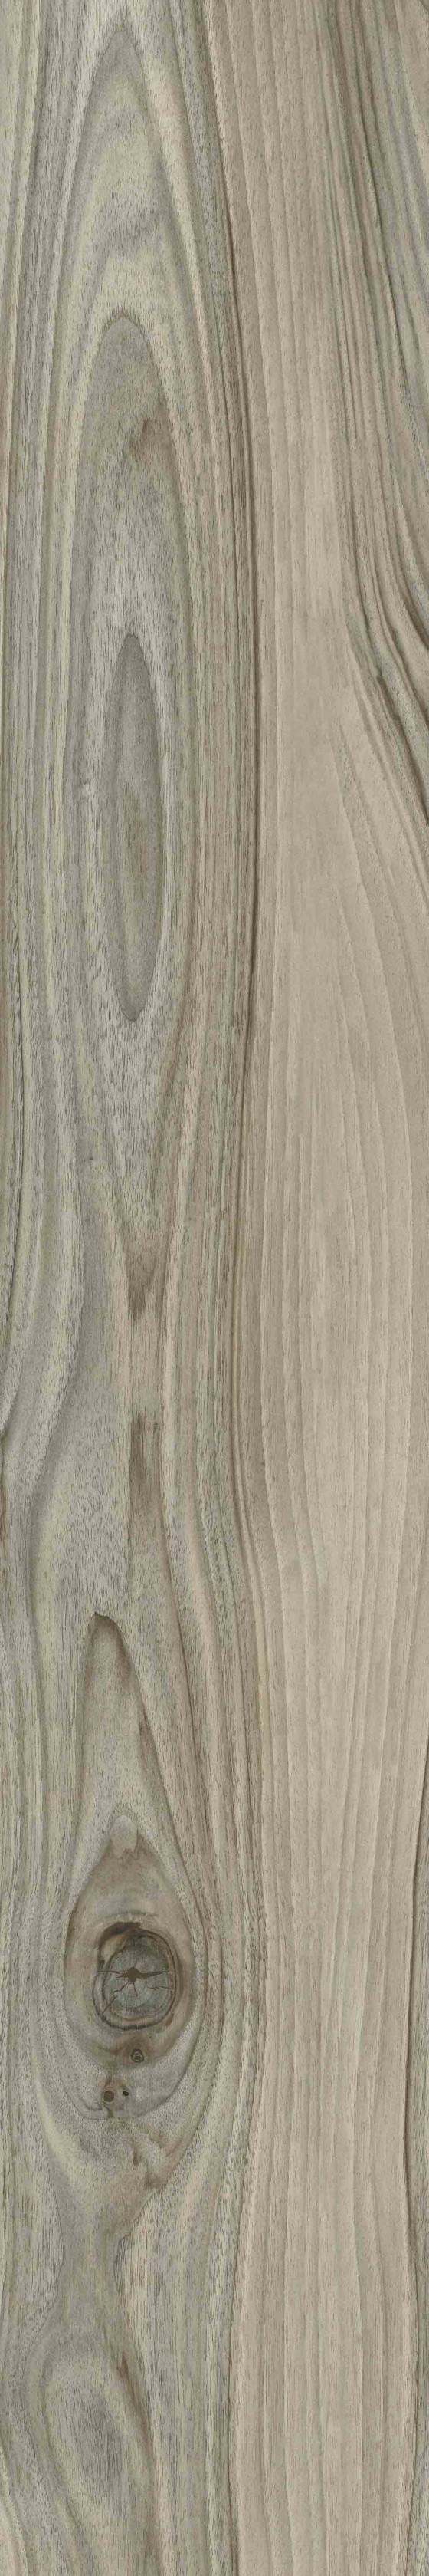 Grove green floor tile wood grove green floor tile dailygadgetfo Choice Image